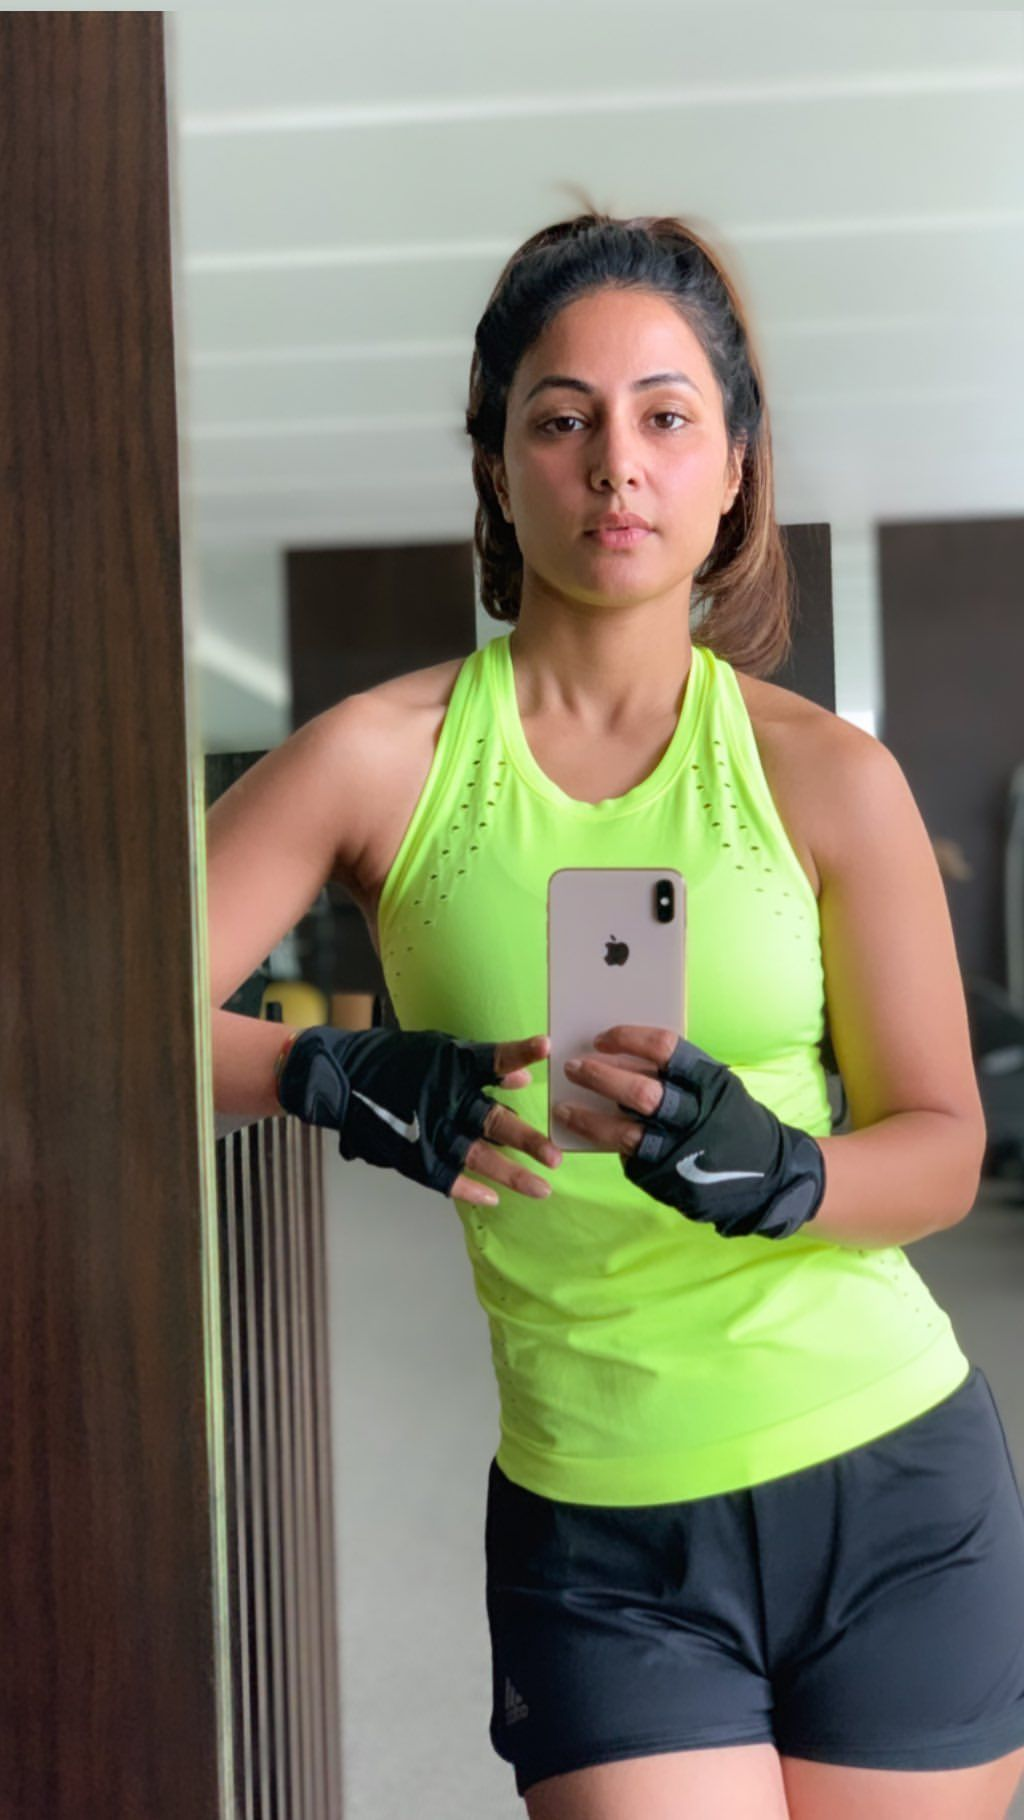 Hina Khan in mirror selfie at the gym